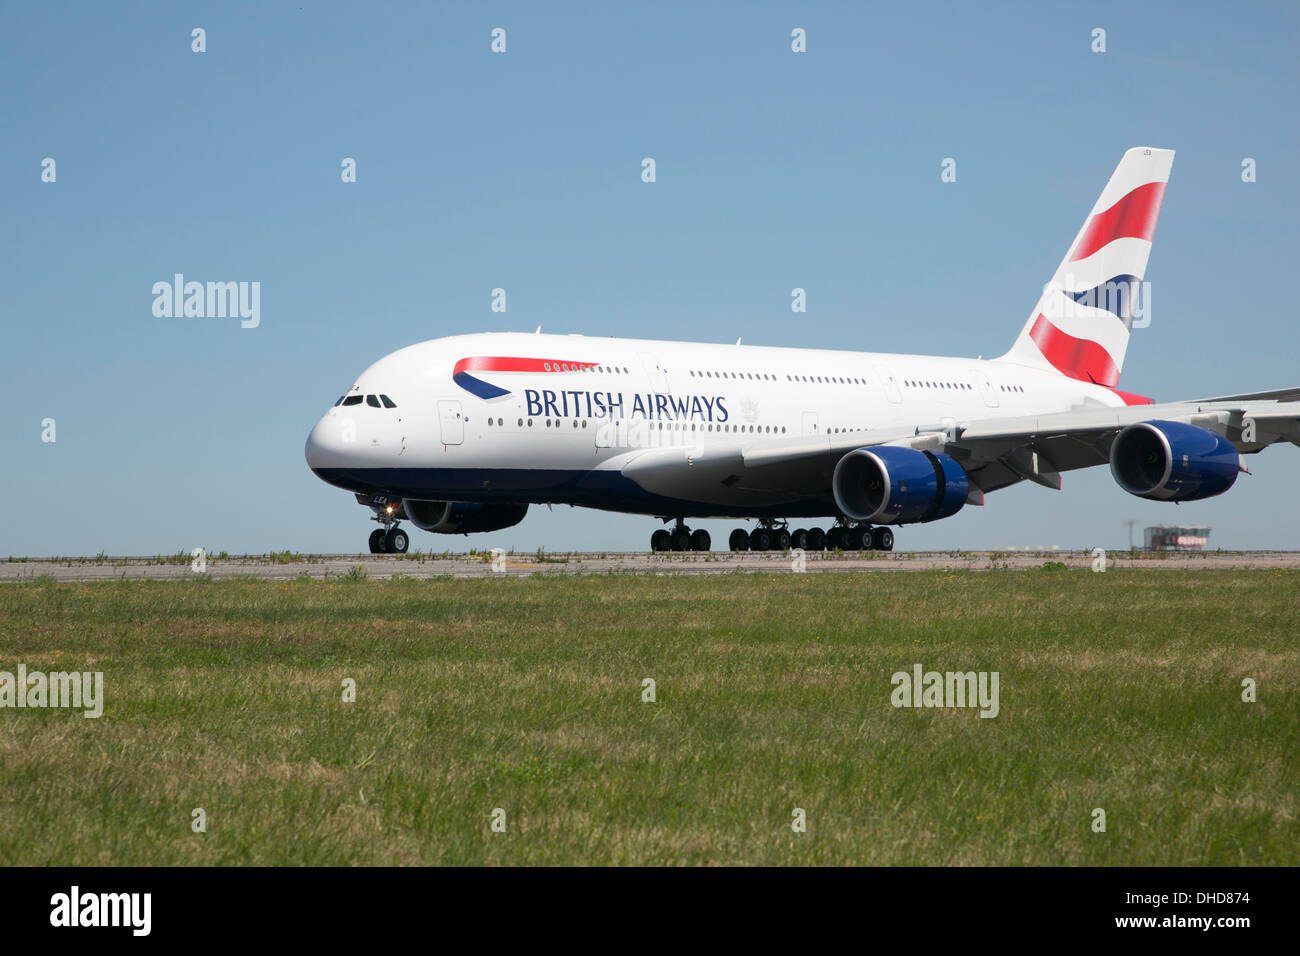 Airbus A380 with British Airways livery on runway at Manston Airport, Kent, England, UK - Stock Image